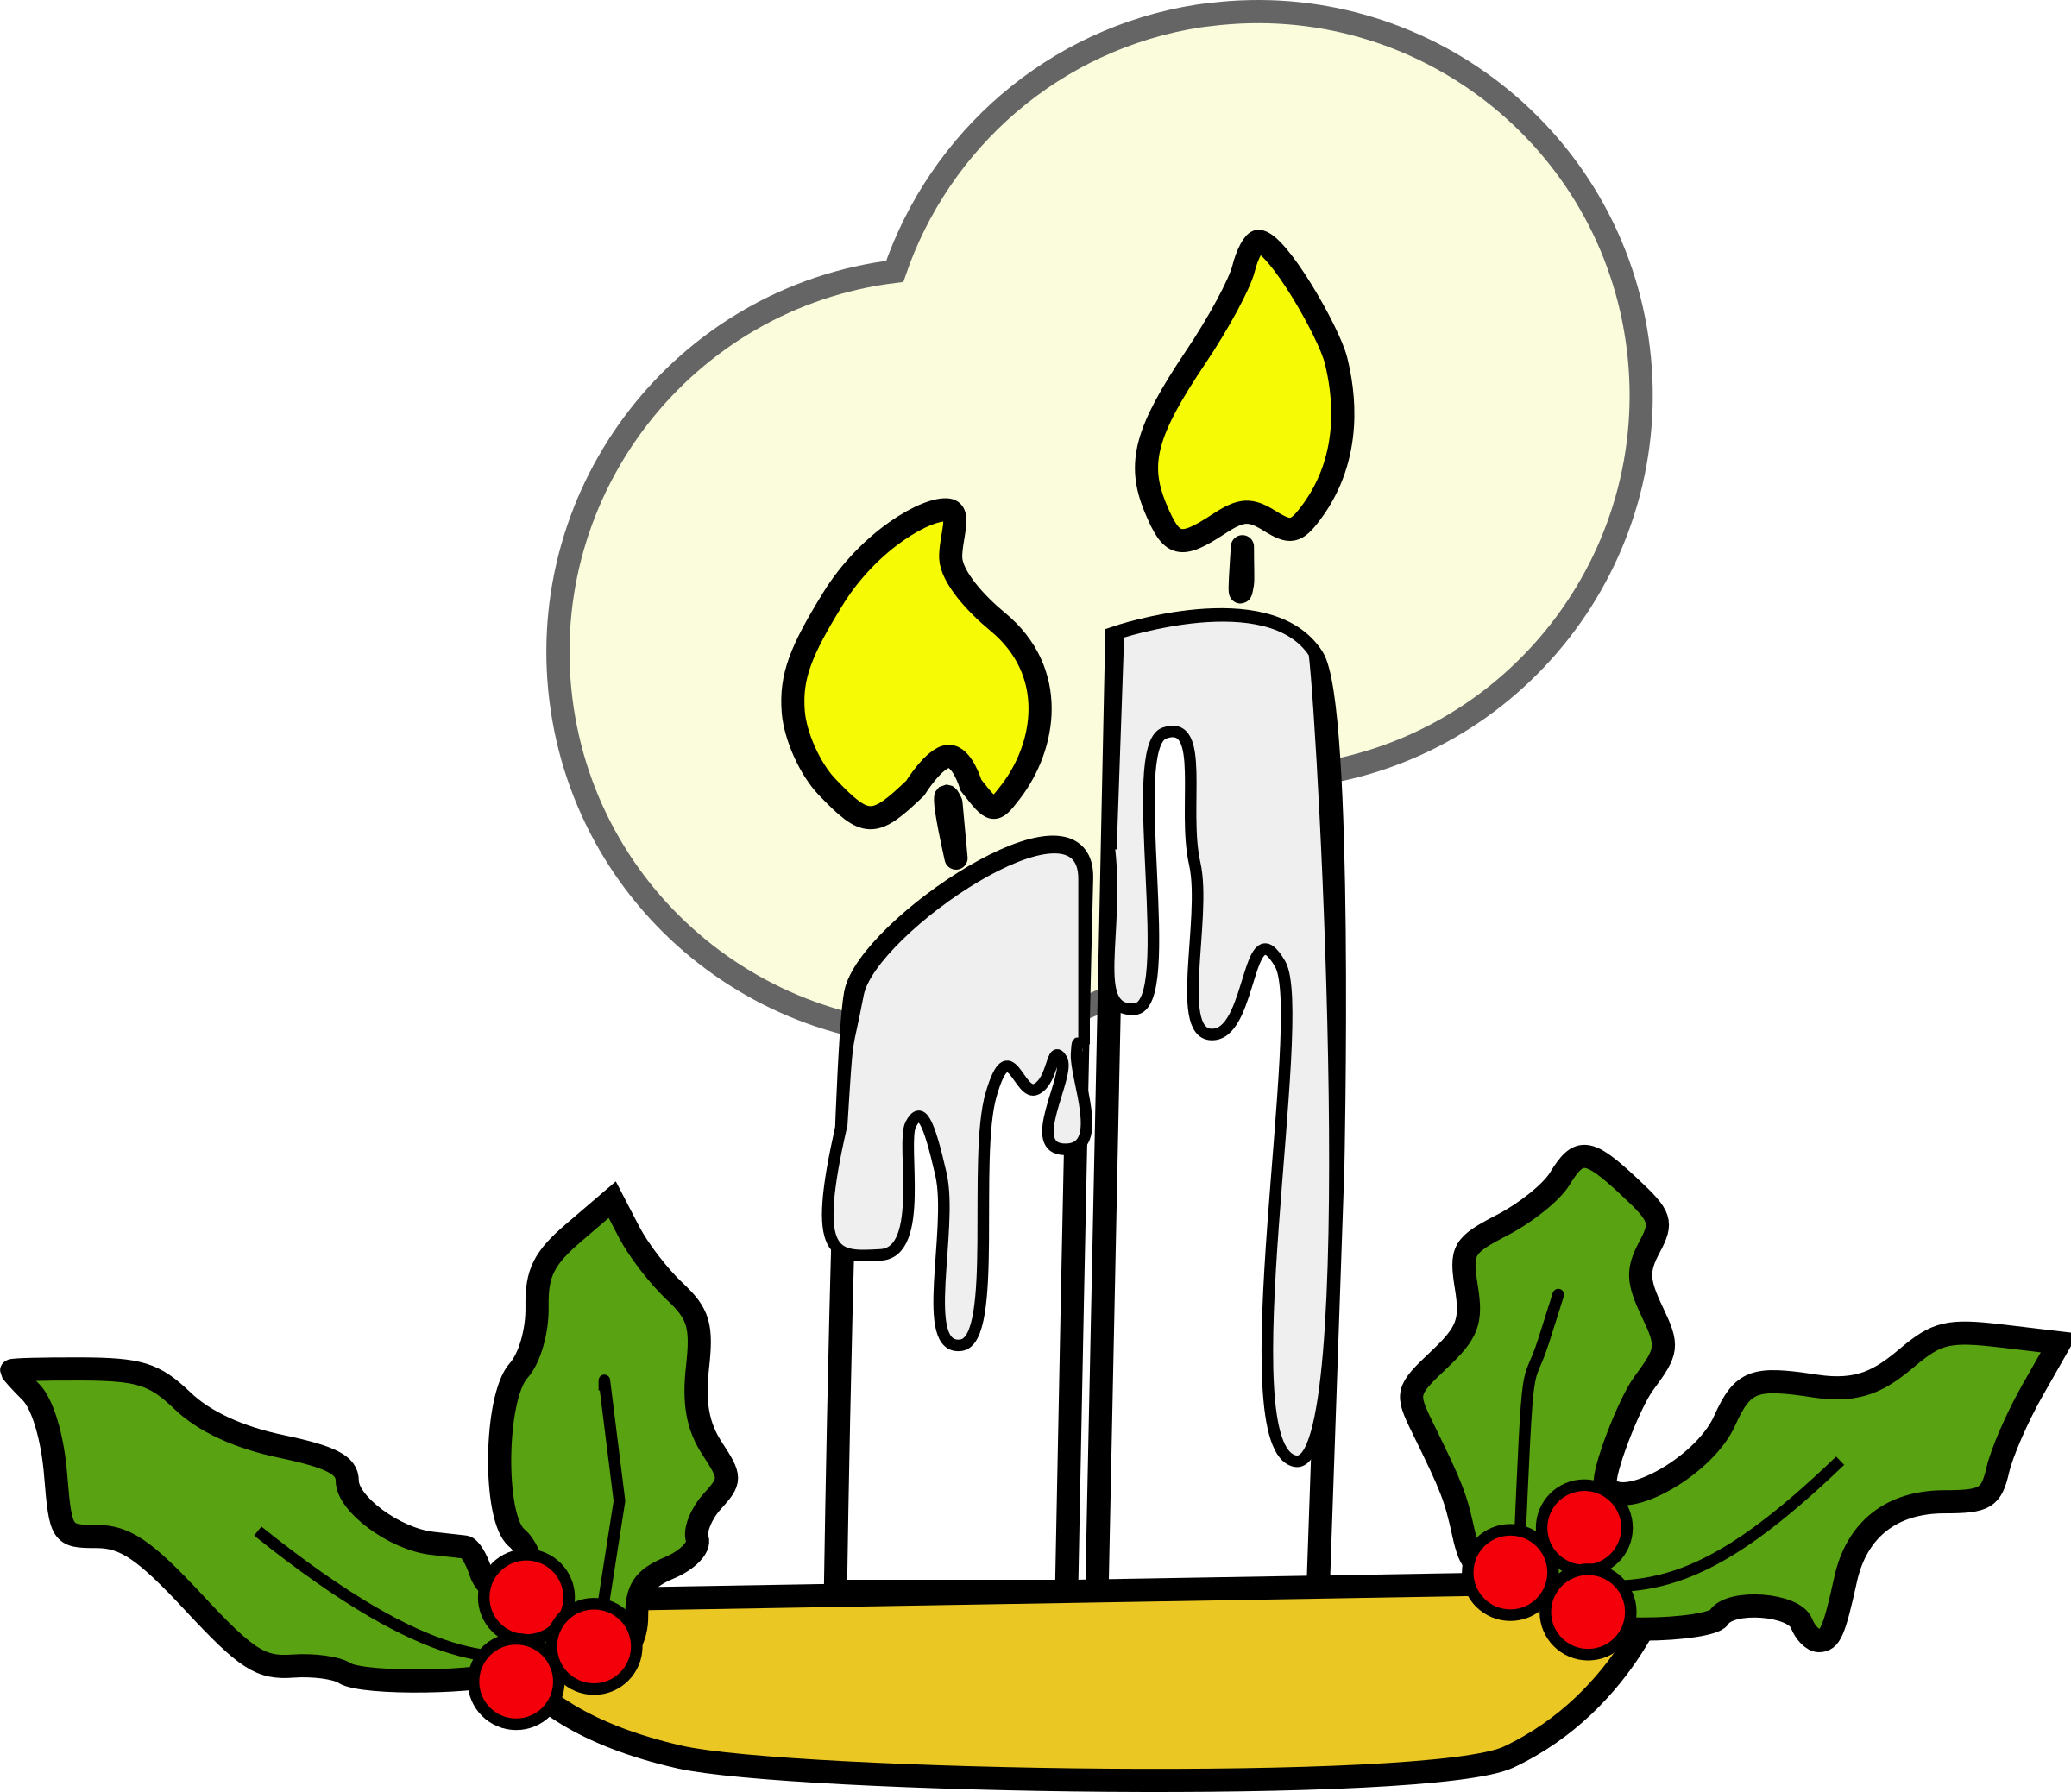 Christmas candles big image. Holly clipart candle